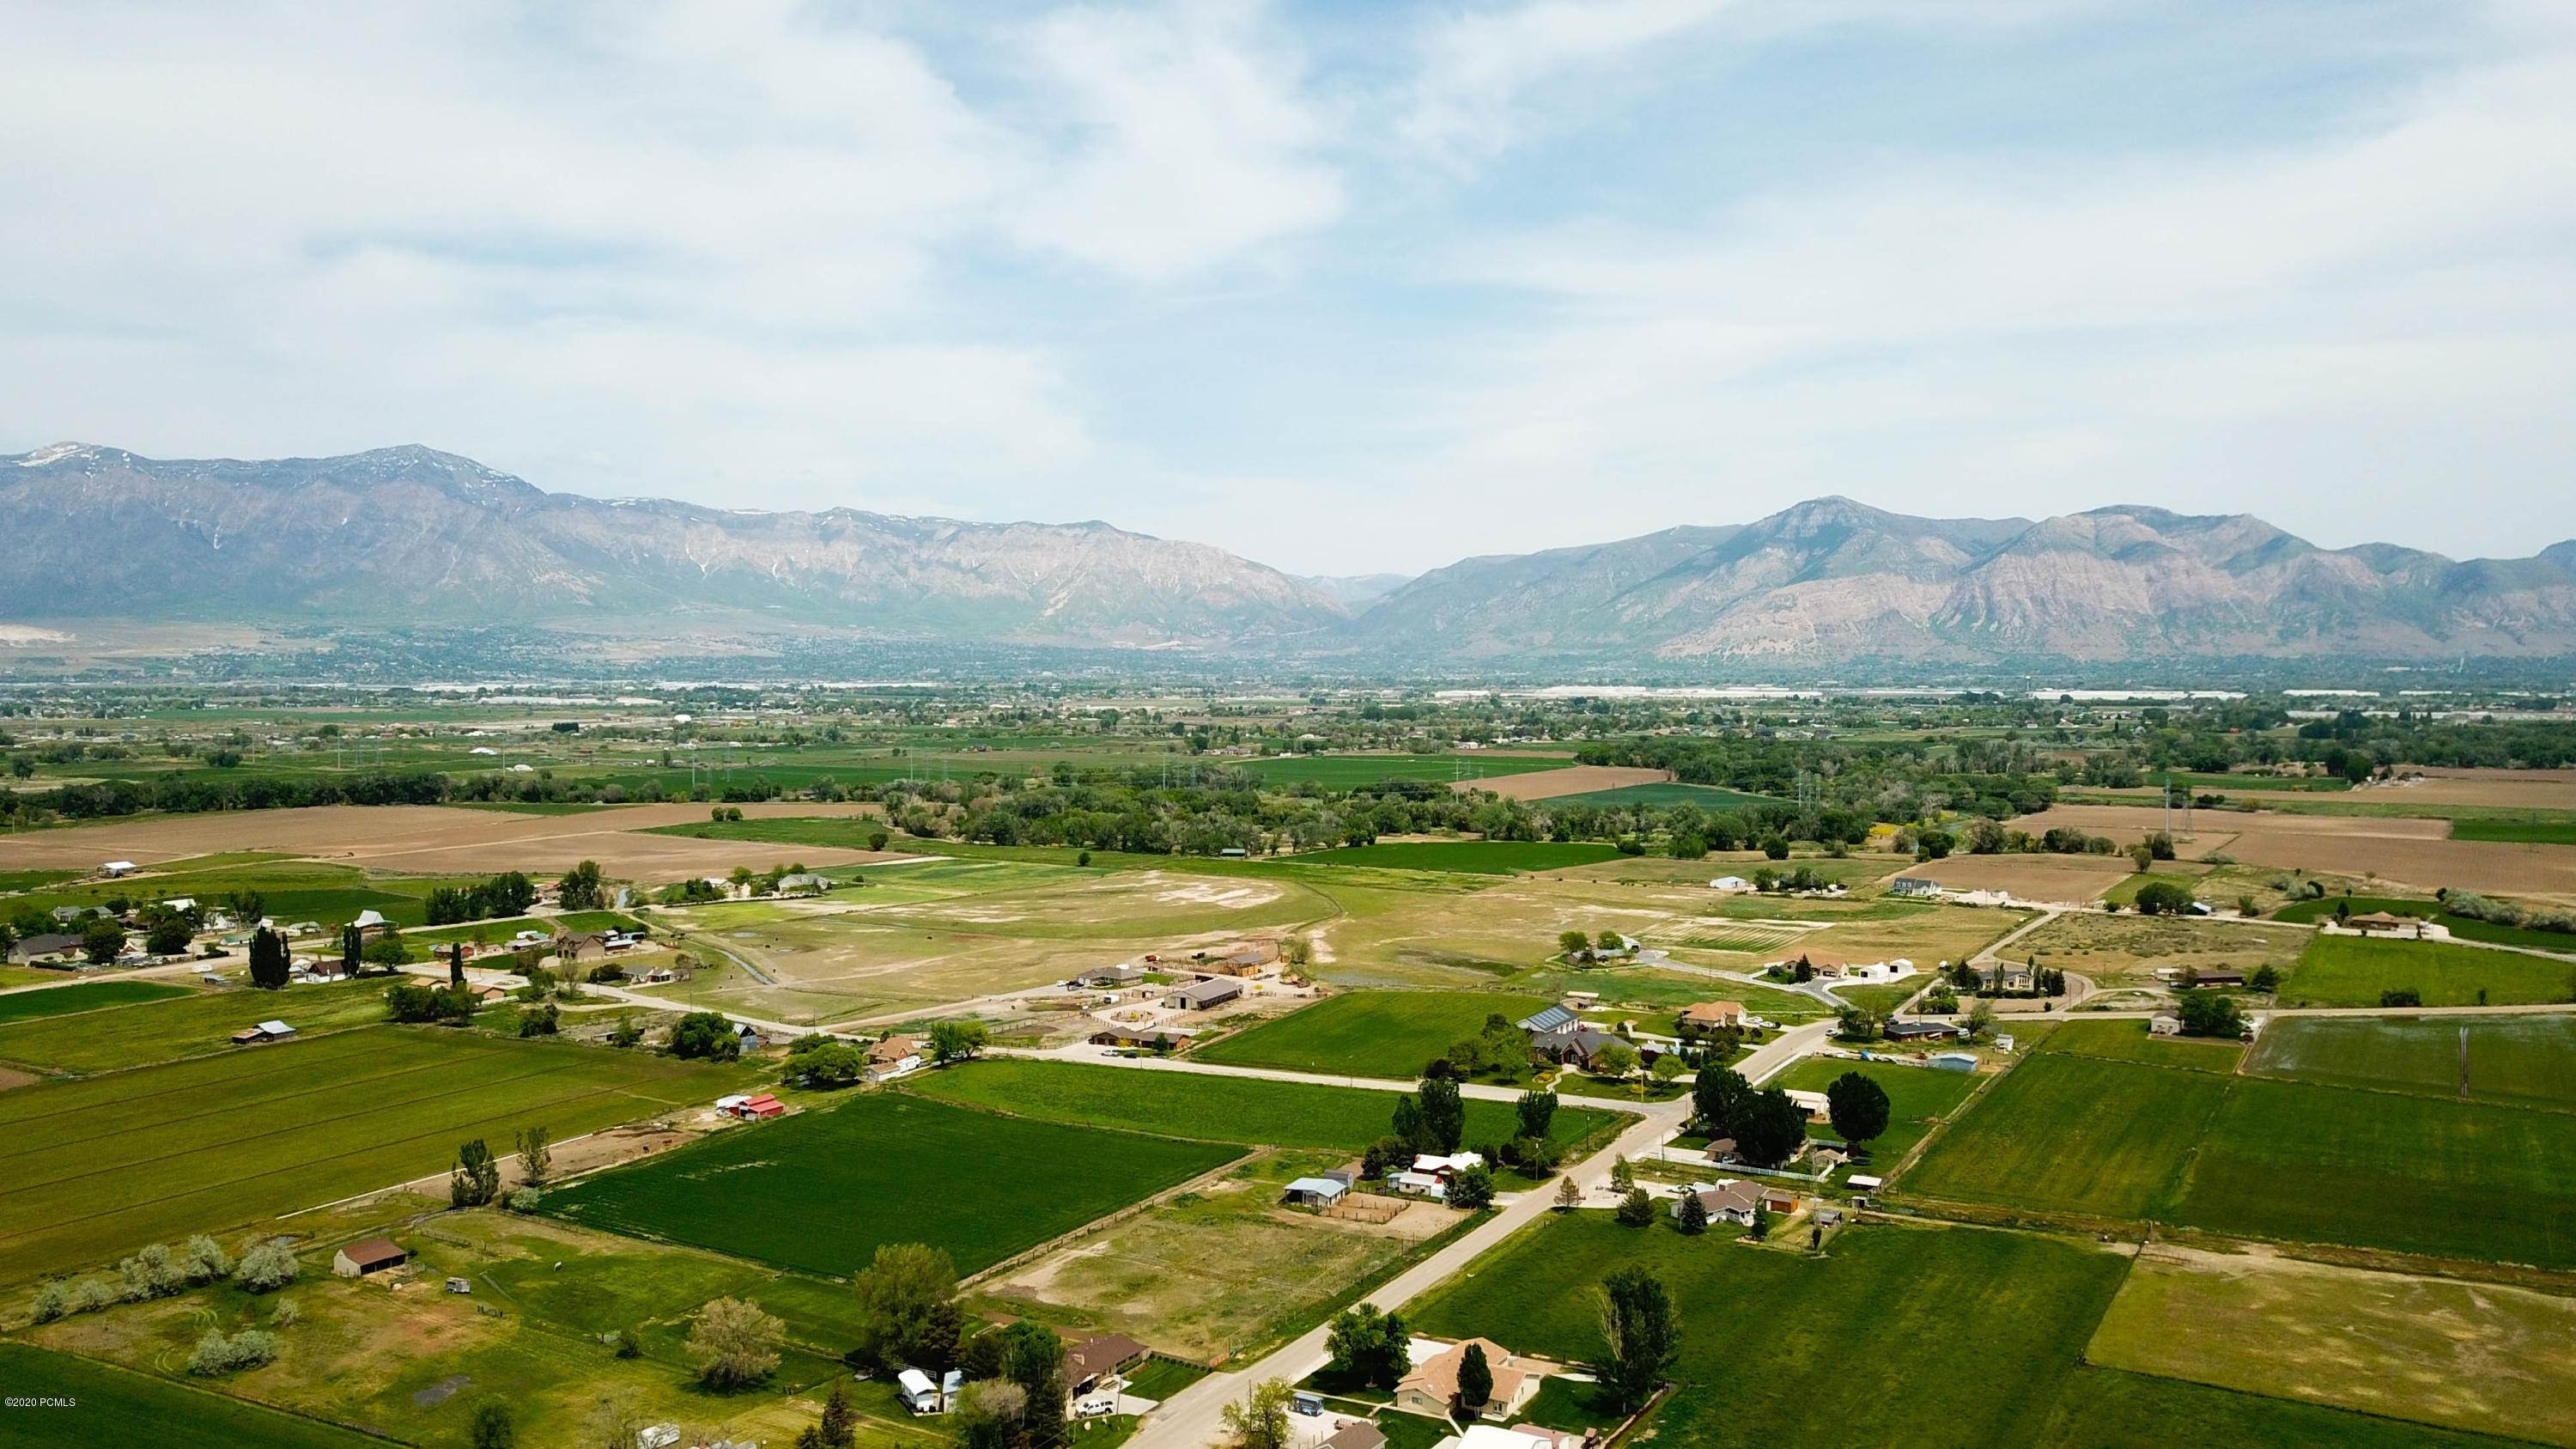 Residential Lots & Land for Sale at Ogden, Utah United States